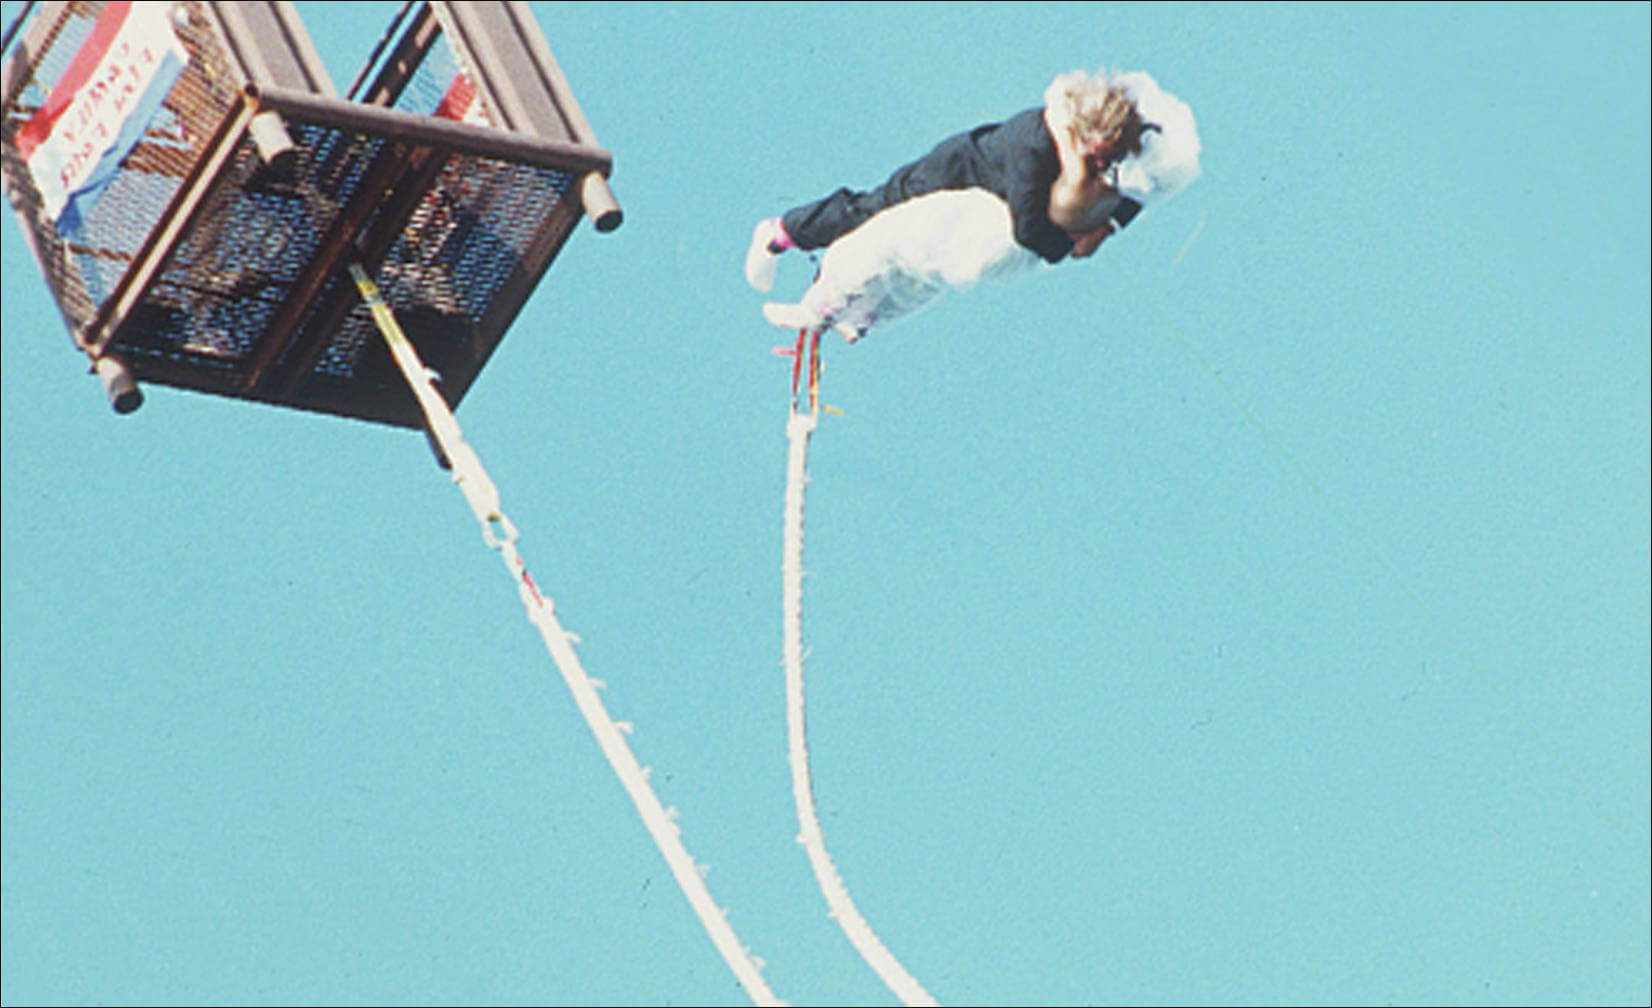 bungee jump together in Atlantic City, N.J after tying the knot